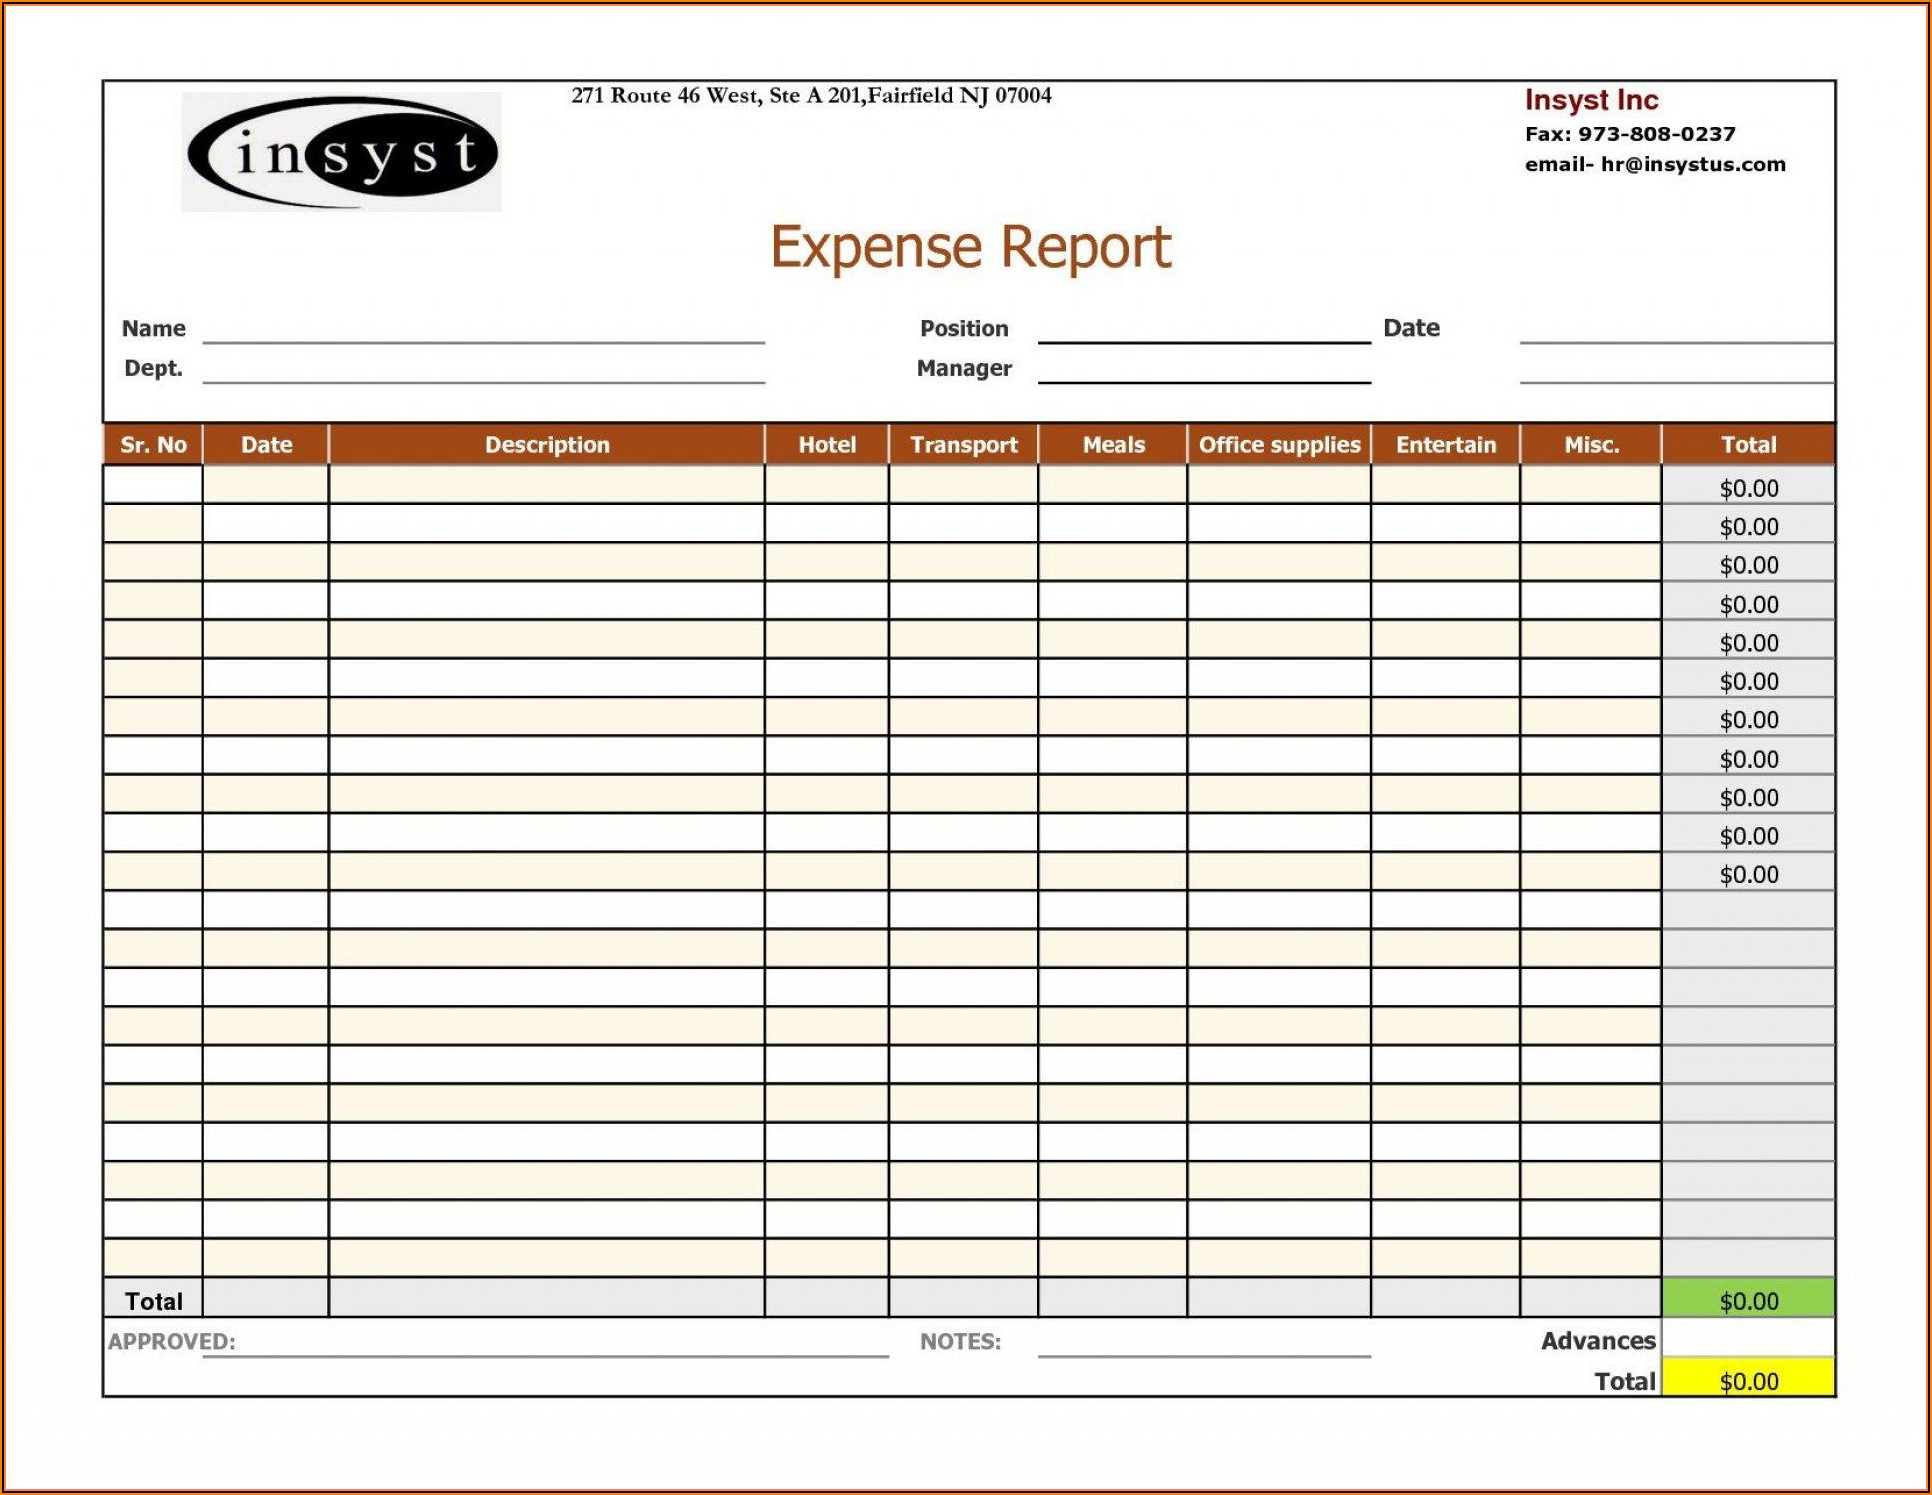 Expense Report Template Free Download